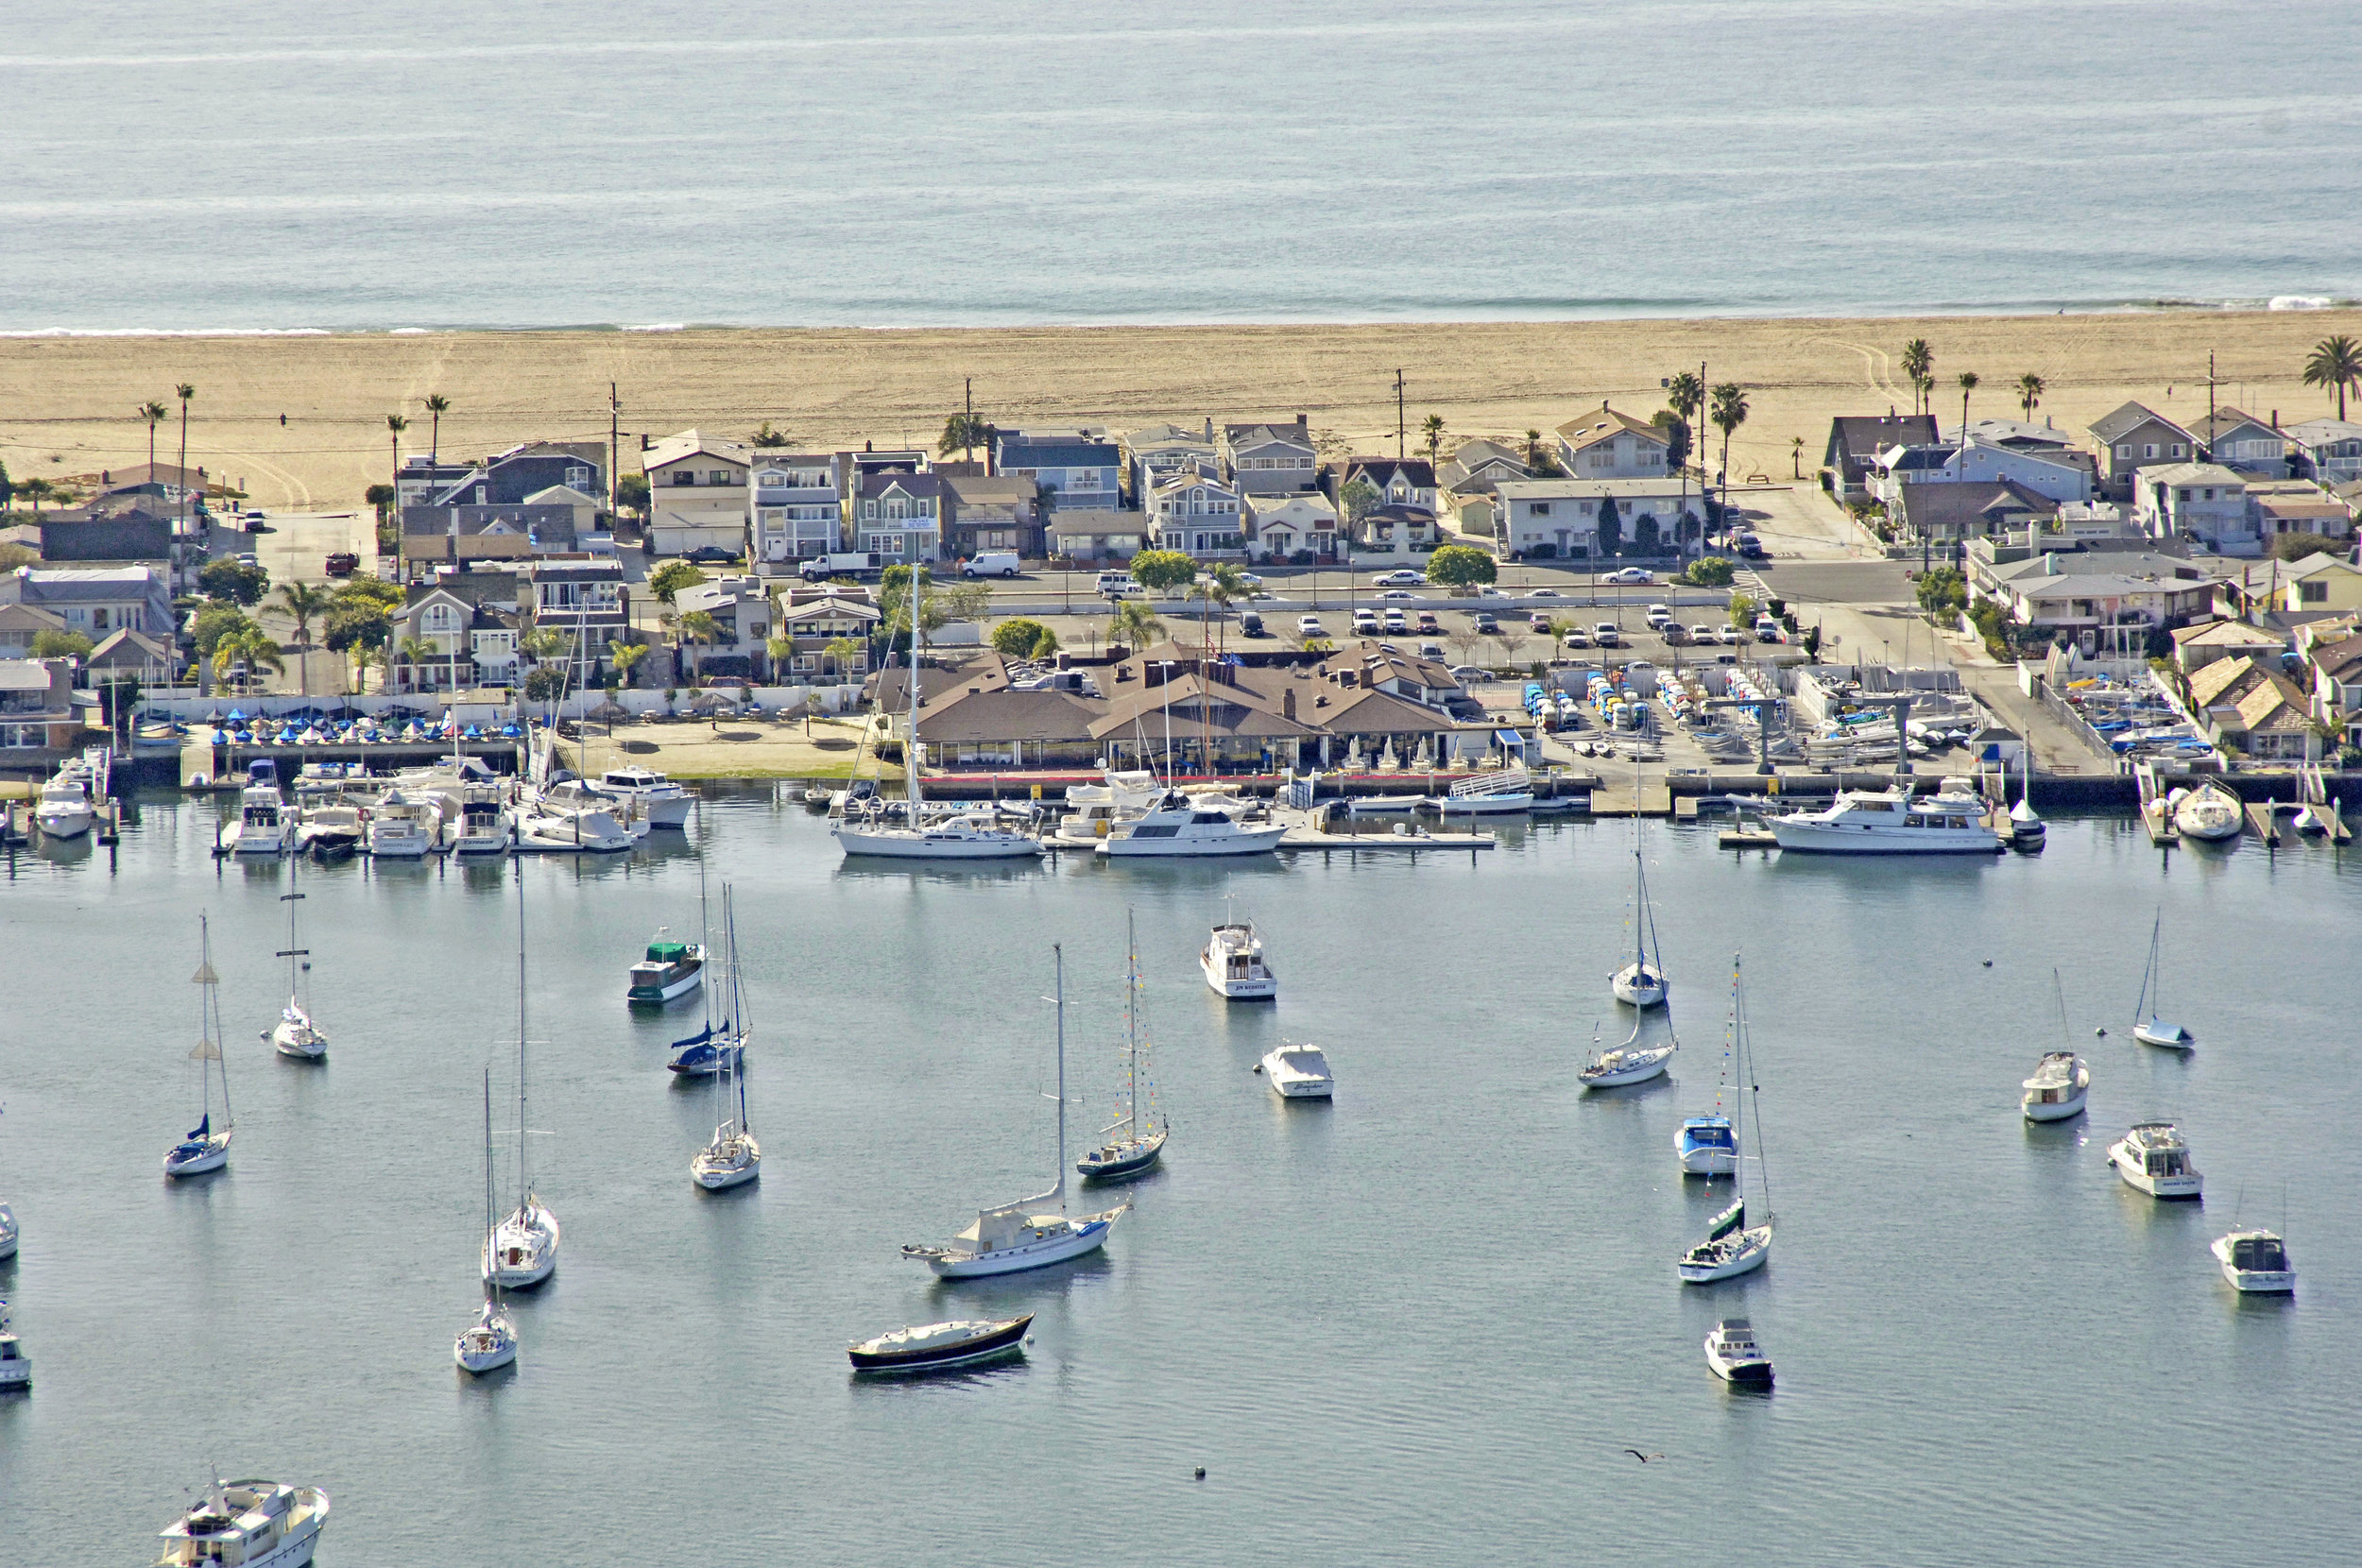 Newport Harbor is one of the busiest harbors on the west coast. Unfortunately, it is also home to many boating injuries and accidents every year.